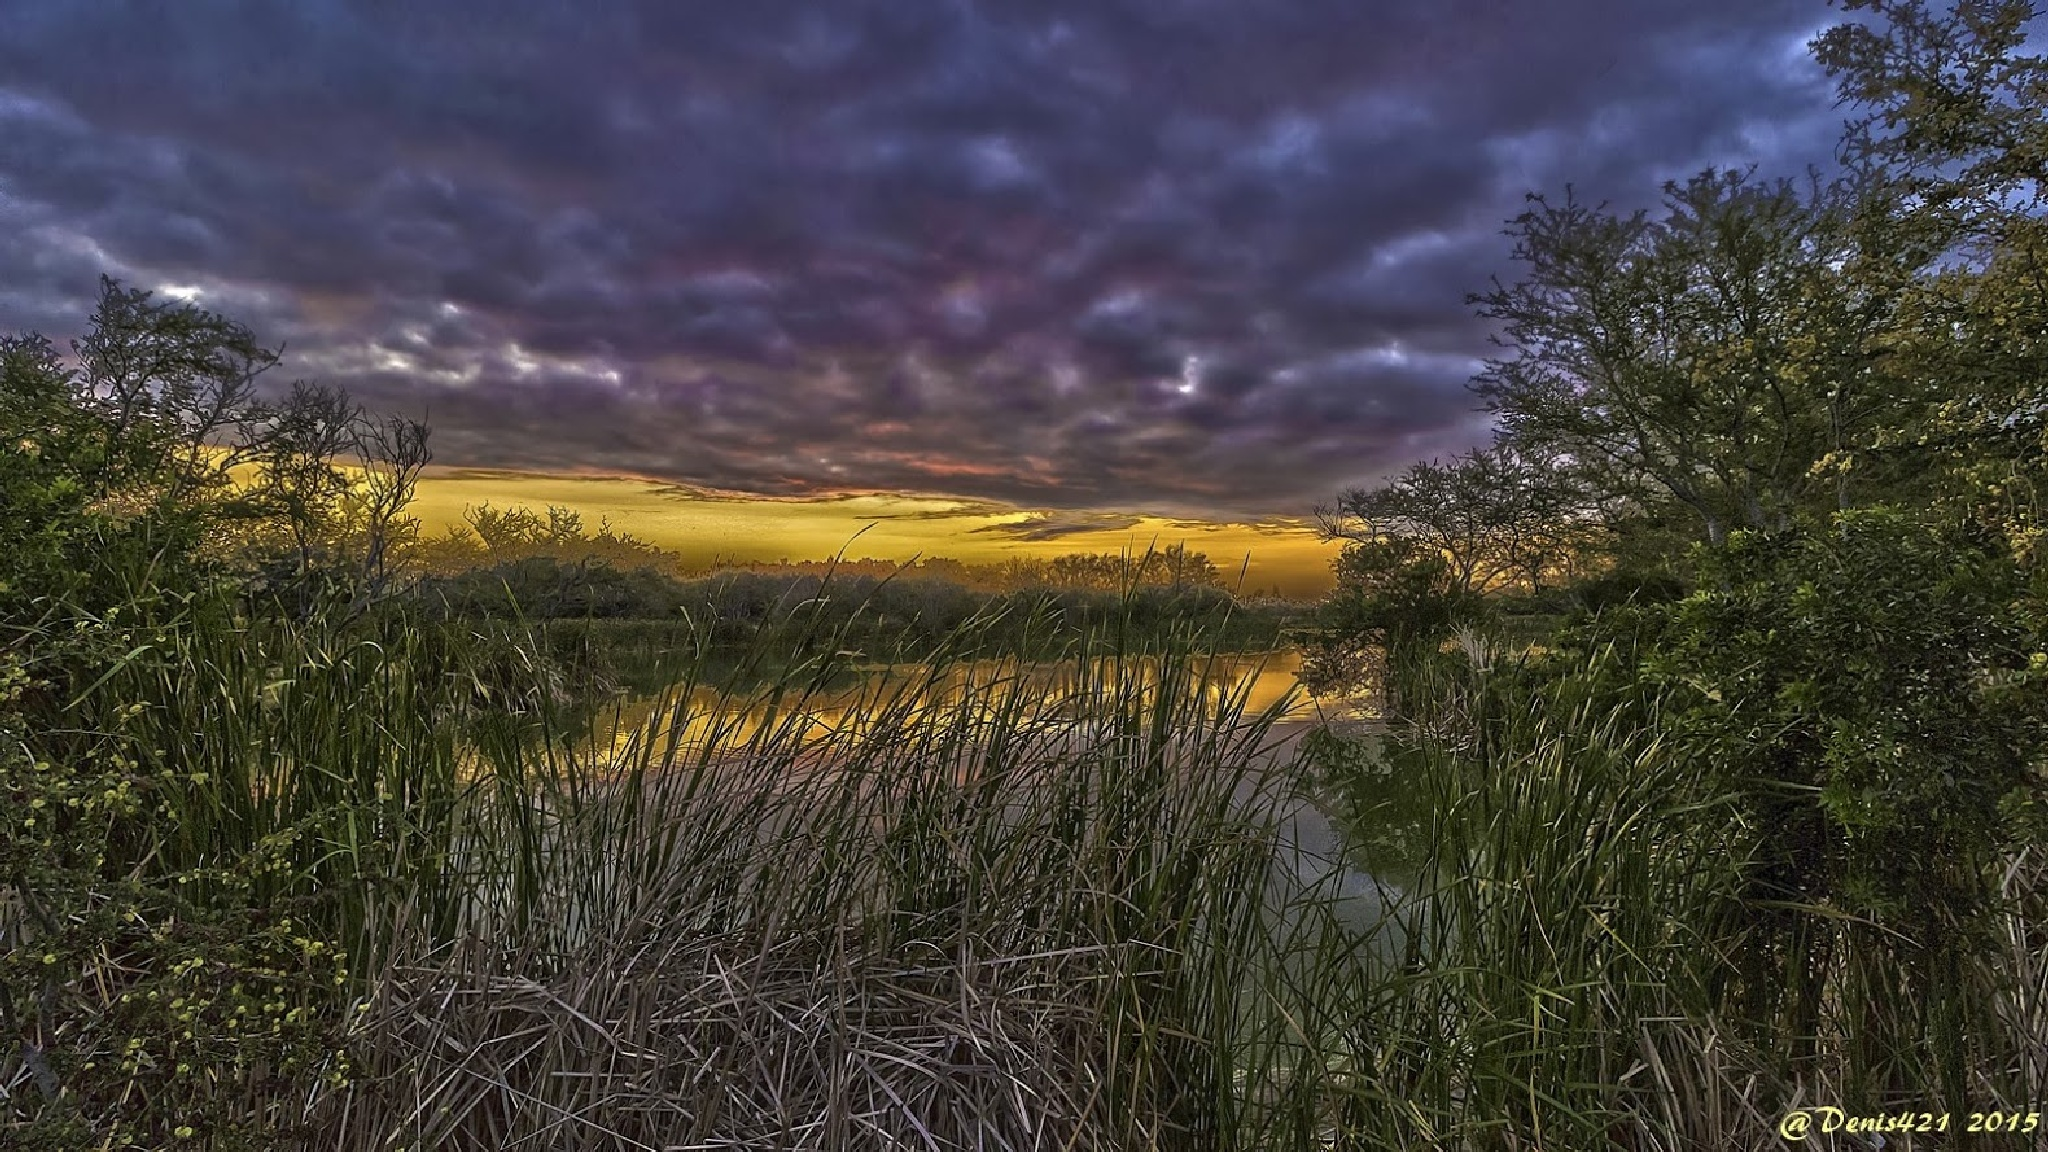 Sunset in cloudy day by Denis Payet